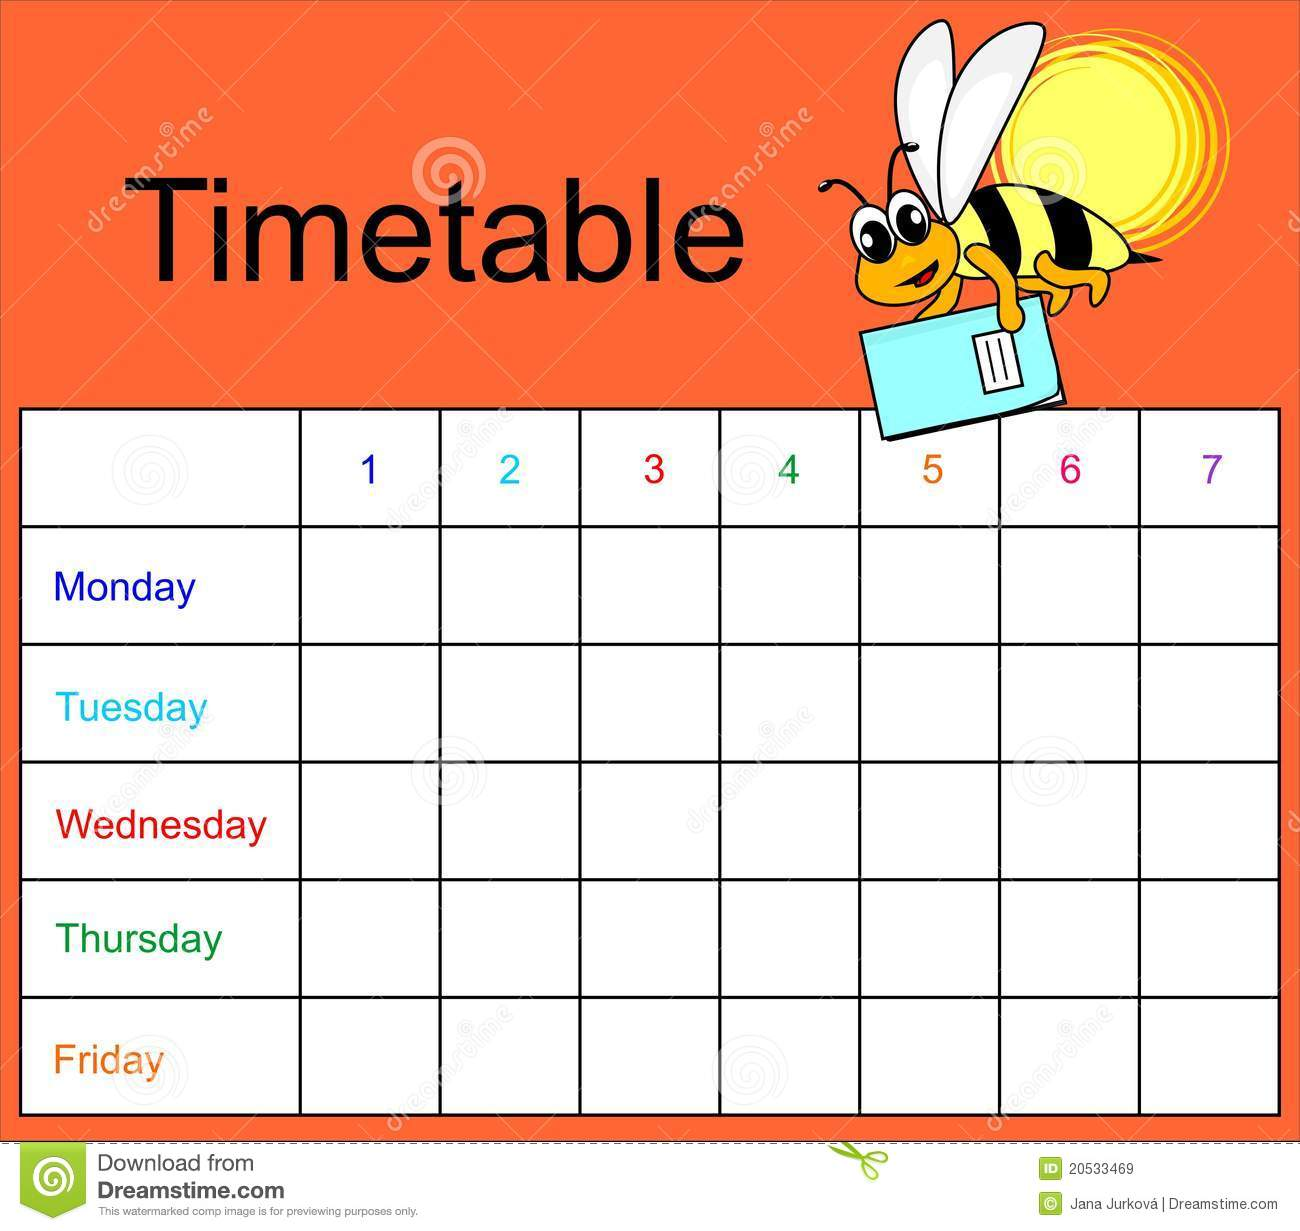 Timetable Stock Vector Image Of Meadow Animal Humor